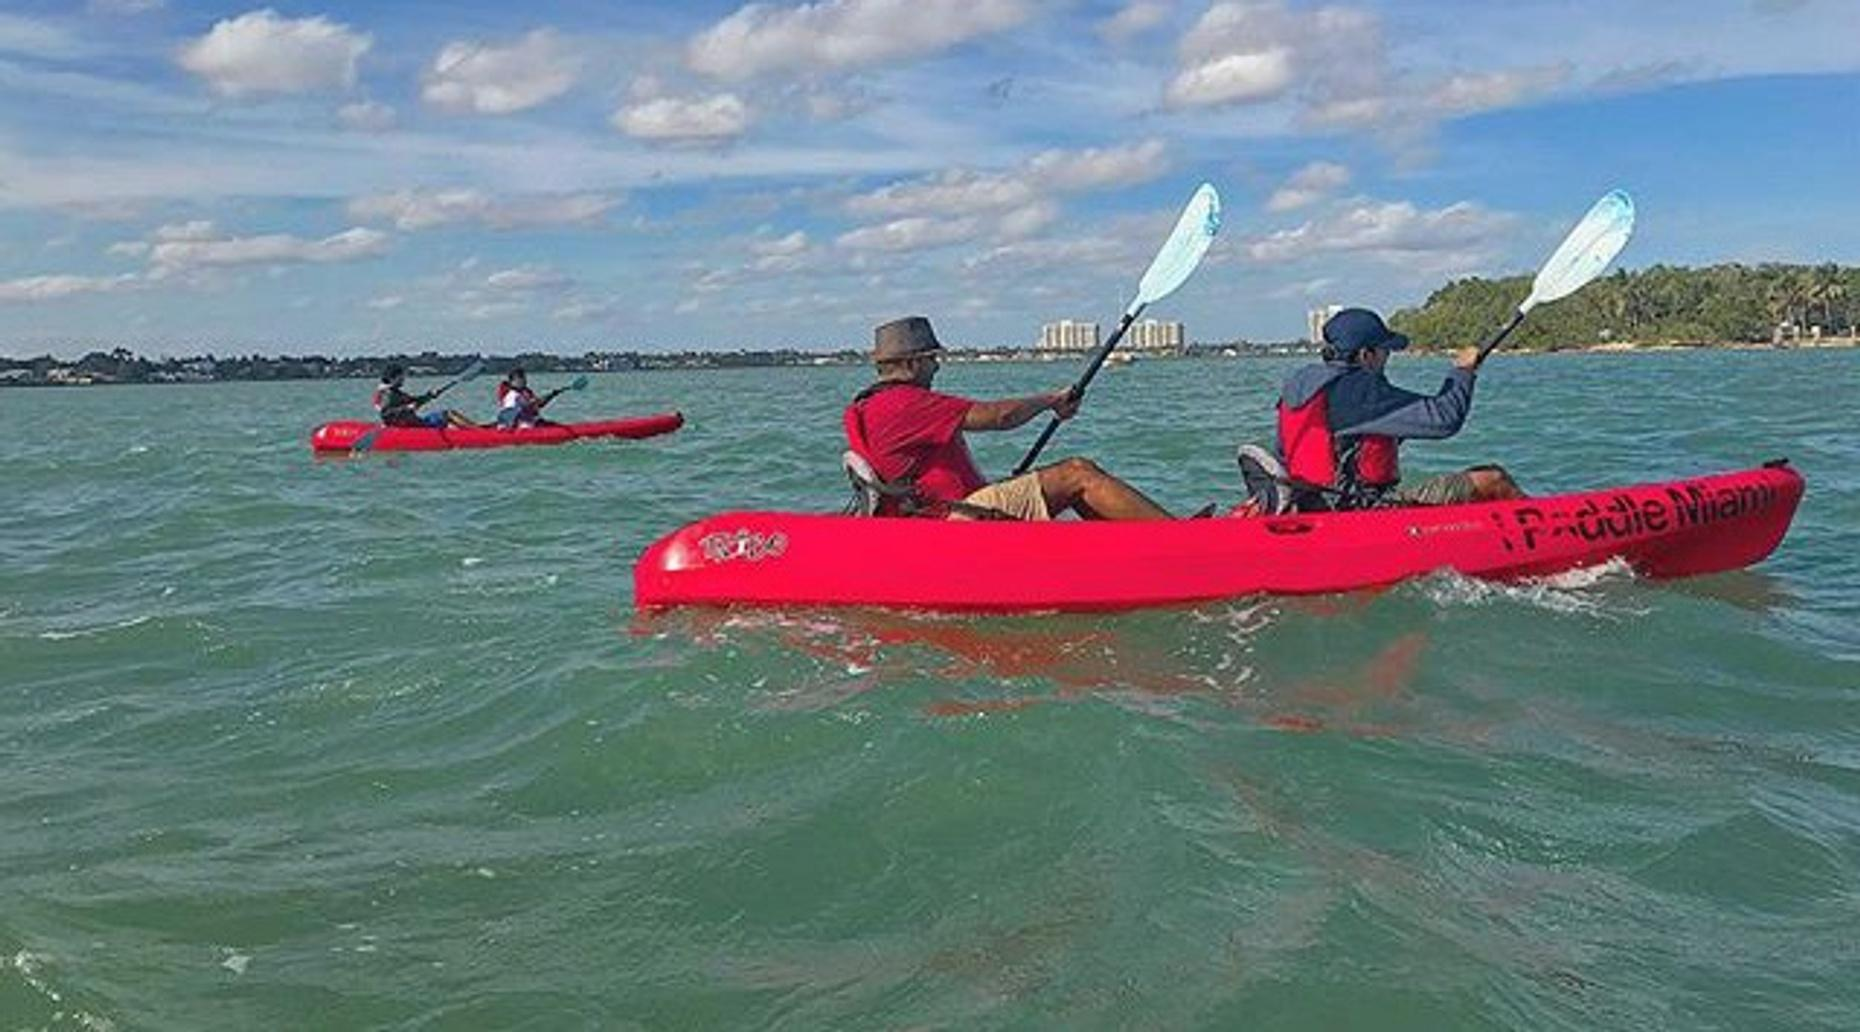 1-Hour Double Kayak Rental in Miami